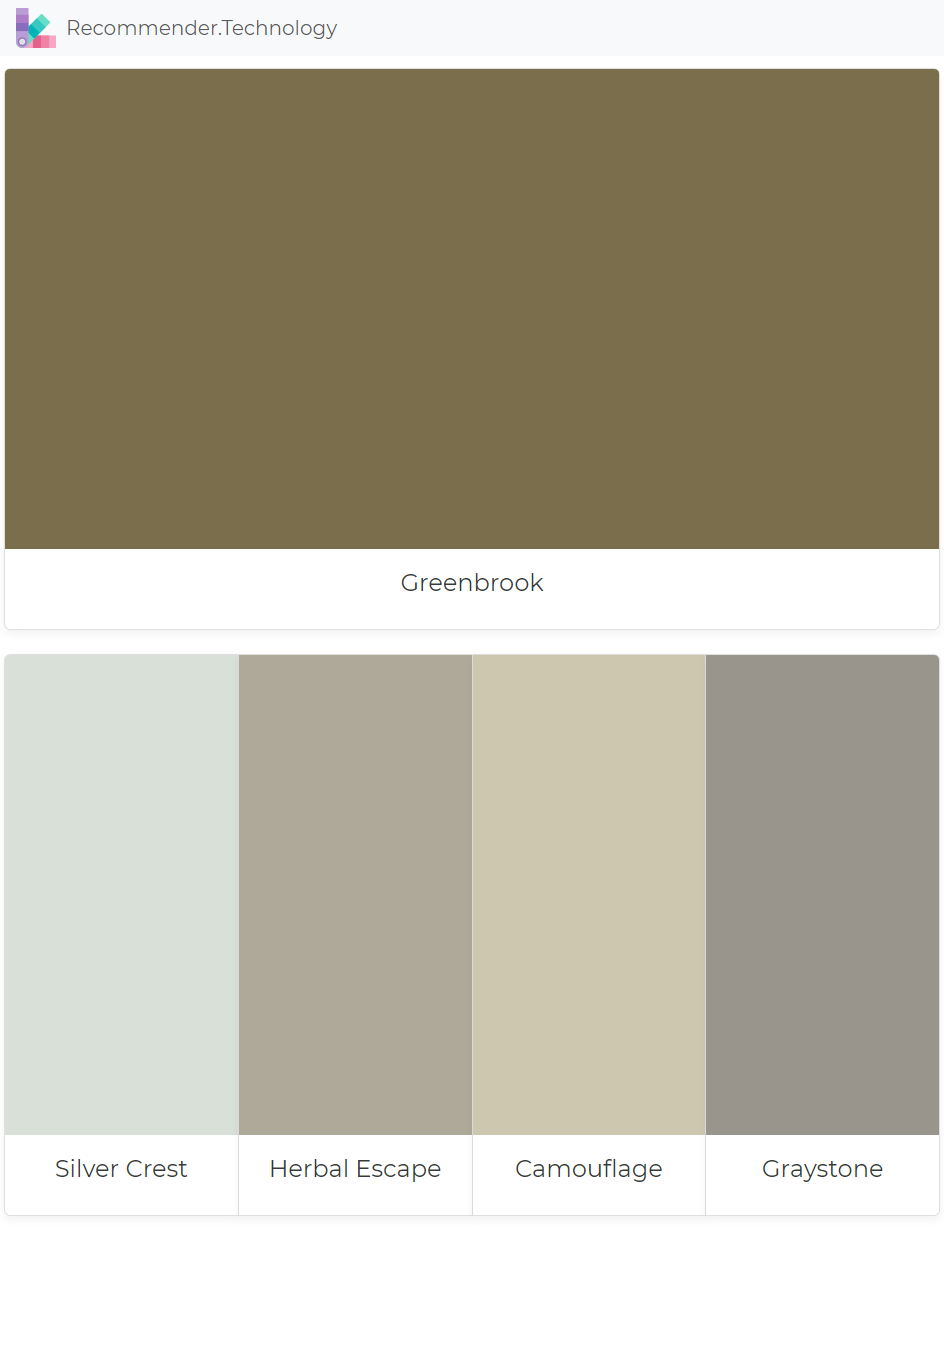 Greenbrook Silver Crest Herbal Escape Camouflage Graystone Perfect Paint Color Paint Colors Benjamin Moore Paint Color Palettes